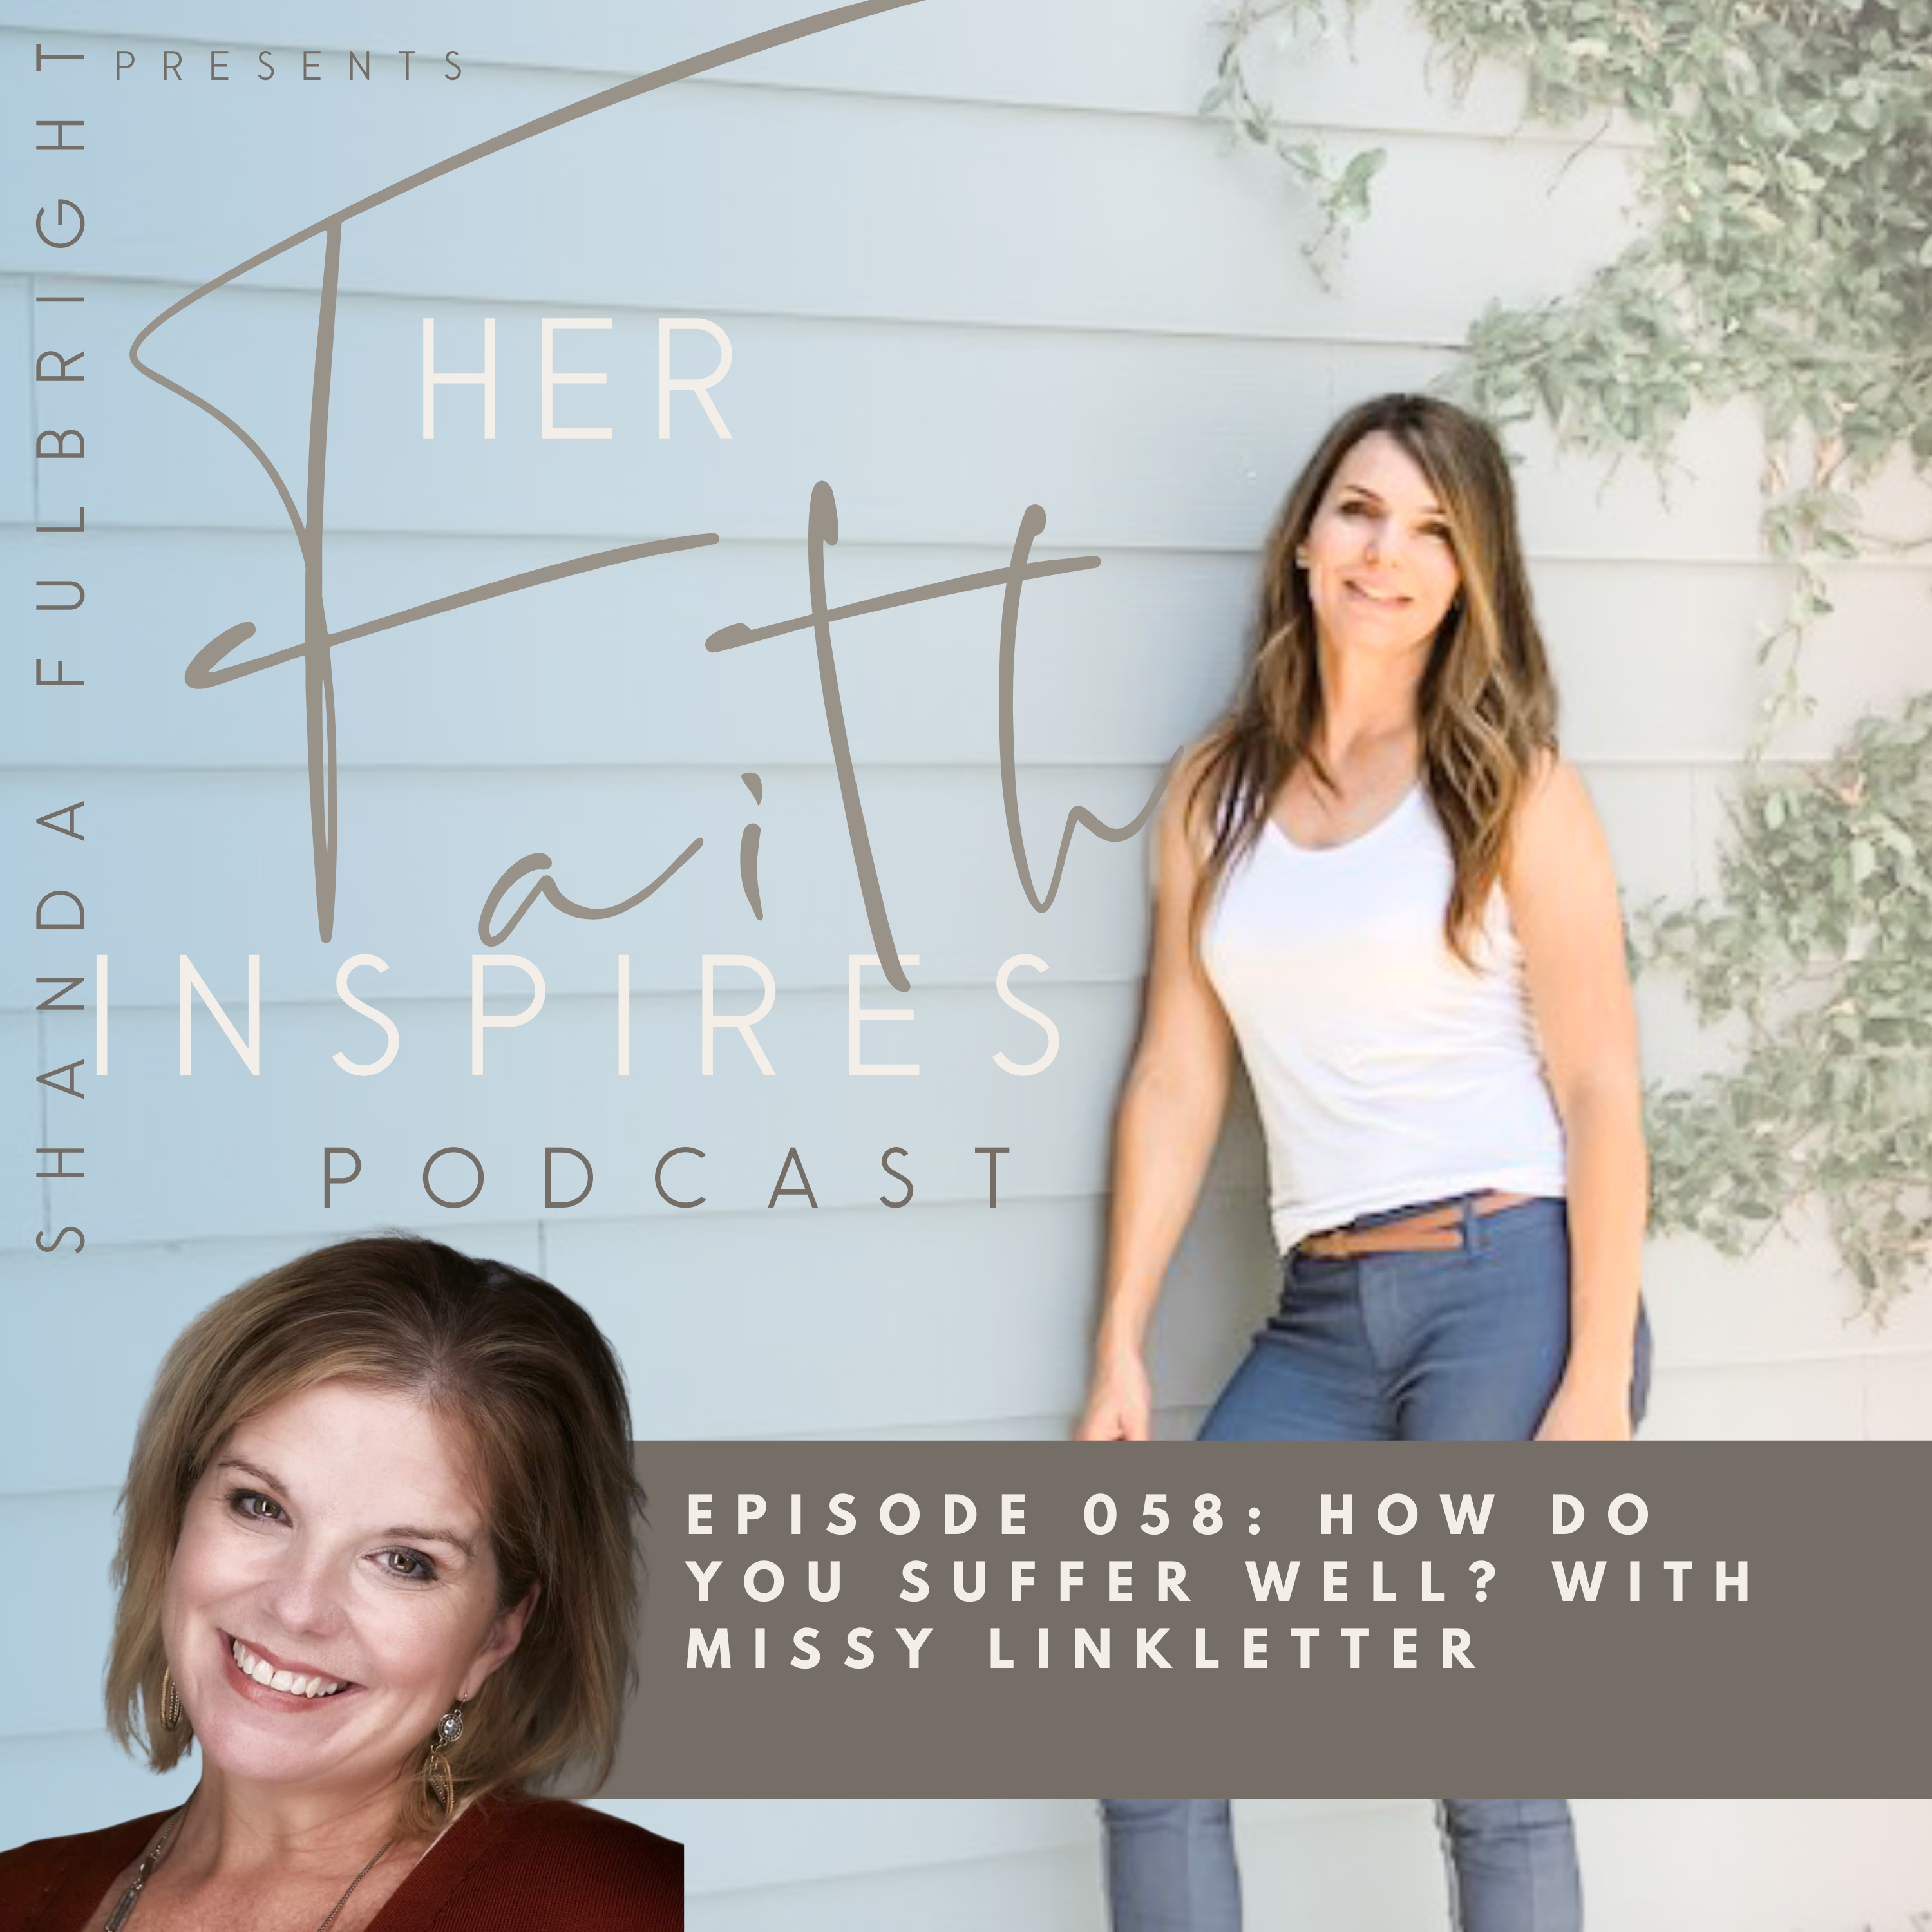 SF Podcast Episode 55 3 - HER FAITH INSPIRES 58 : How do you suffer well with Missy Linkletter